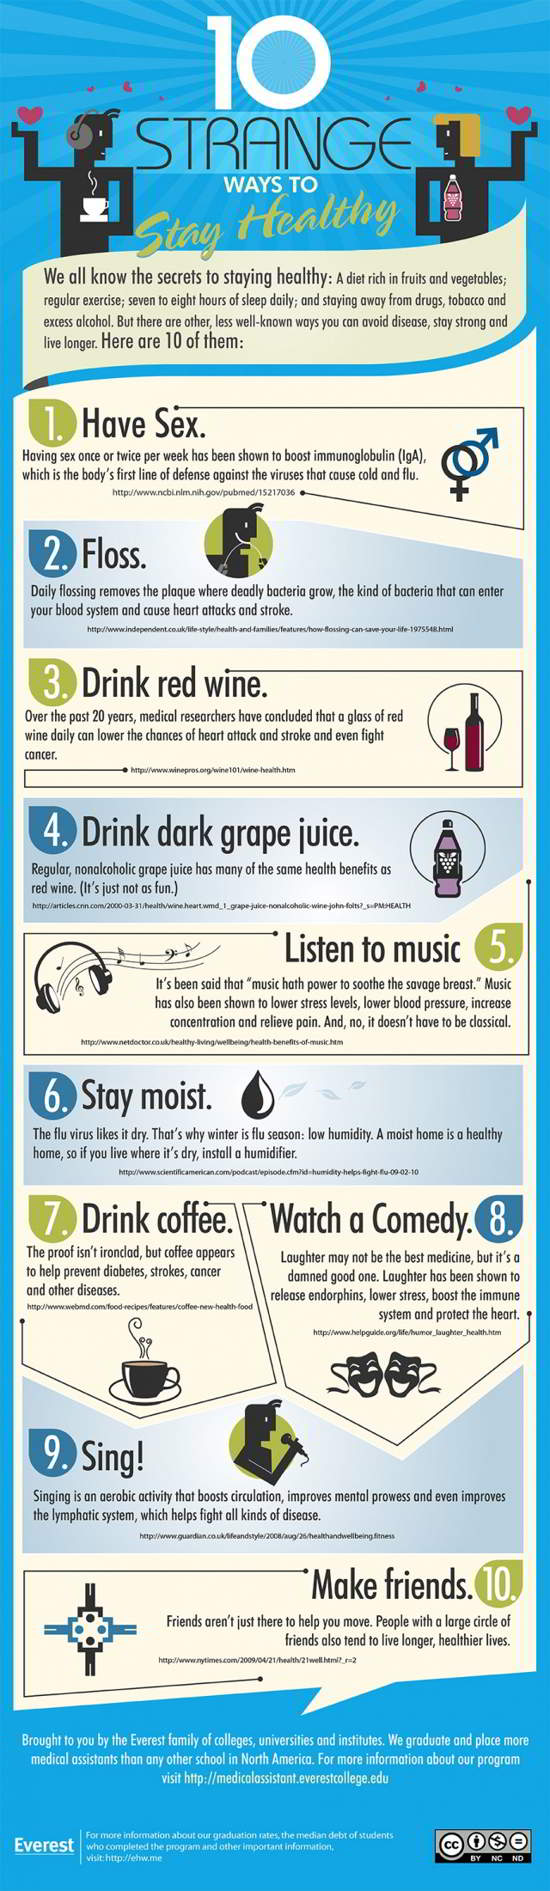 08 10 Strange Ways to Stay Healthy [infographic]